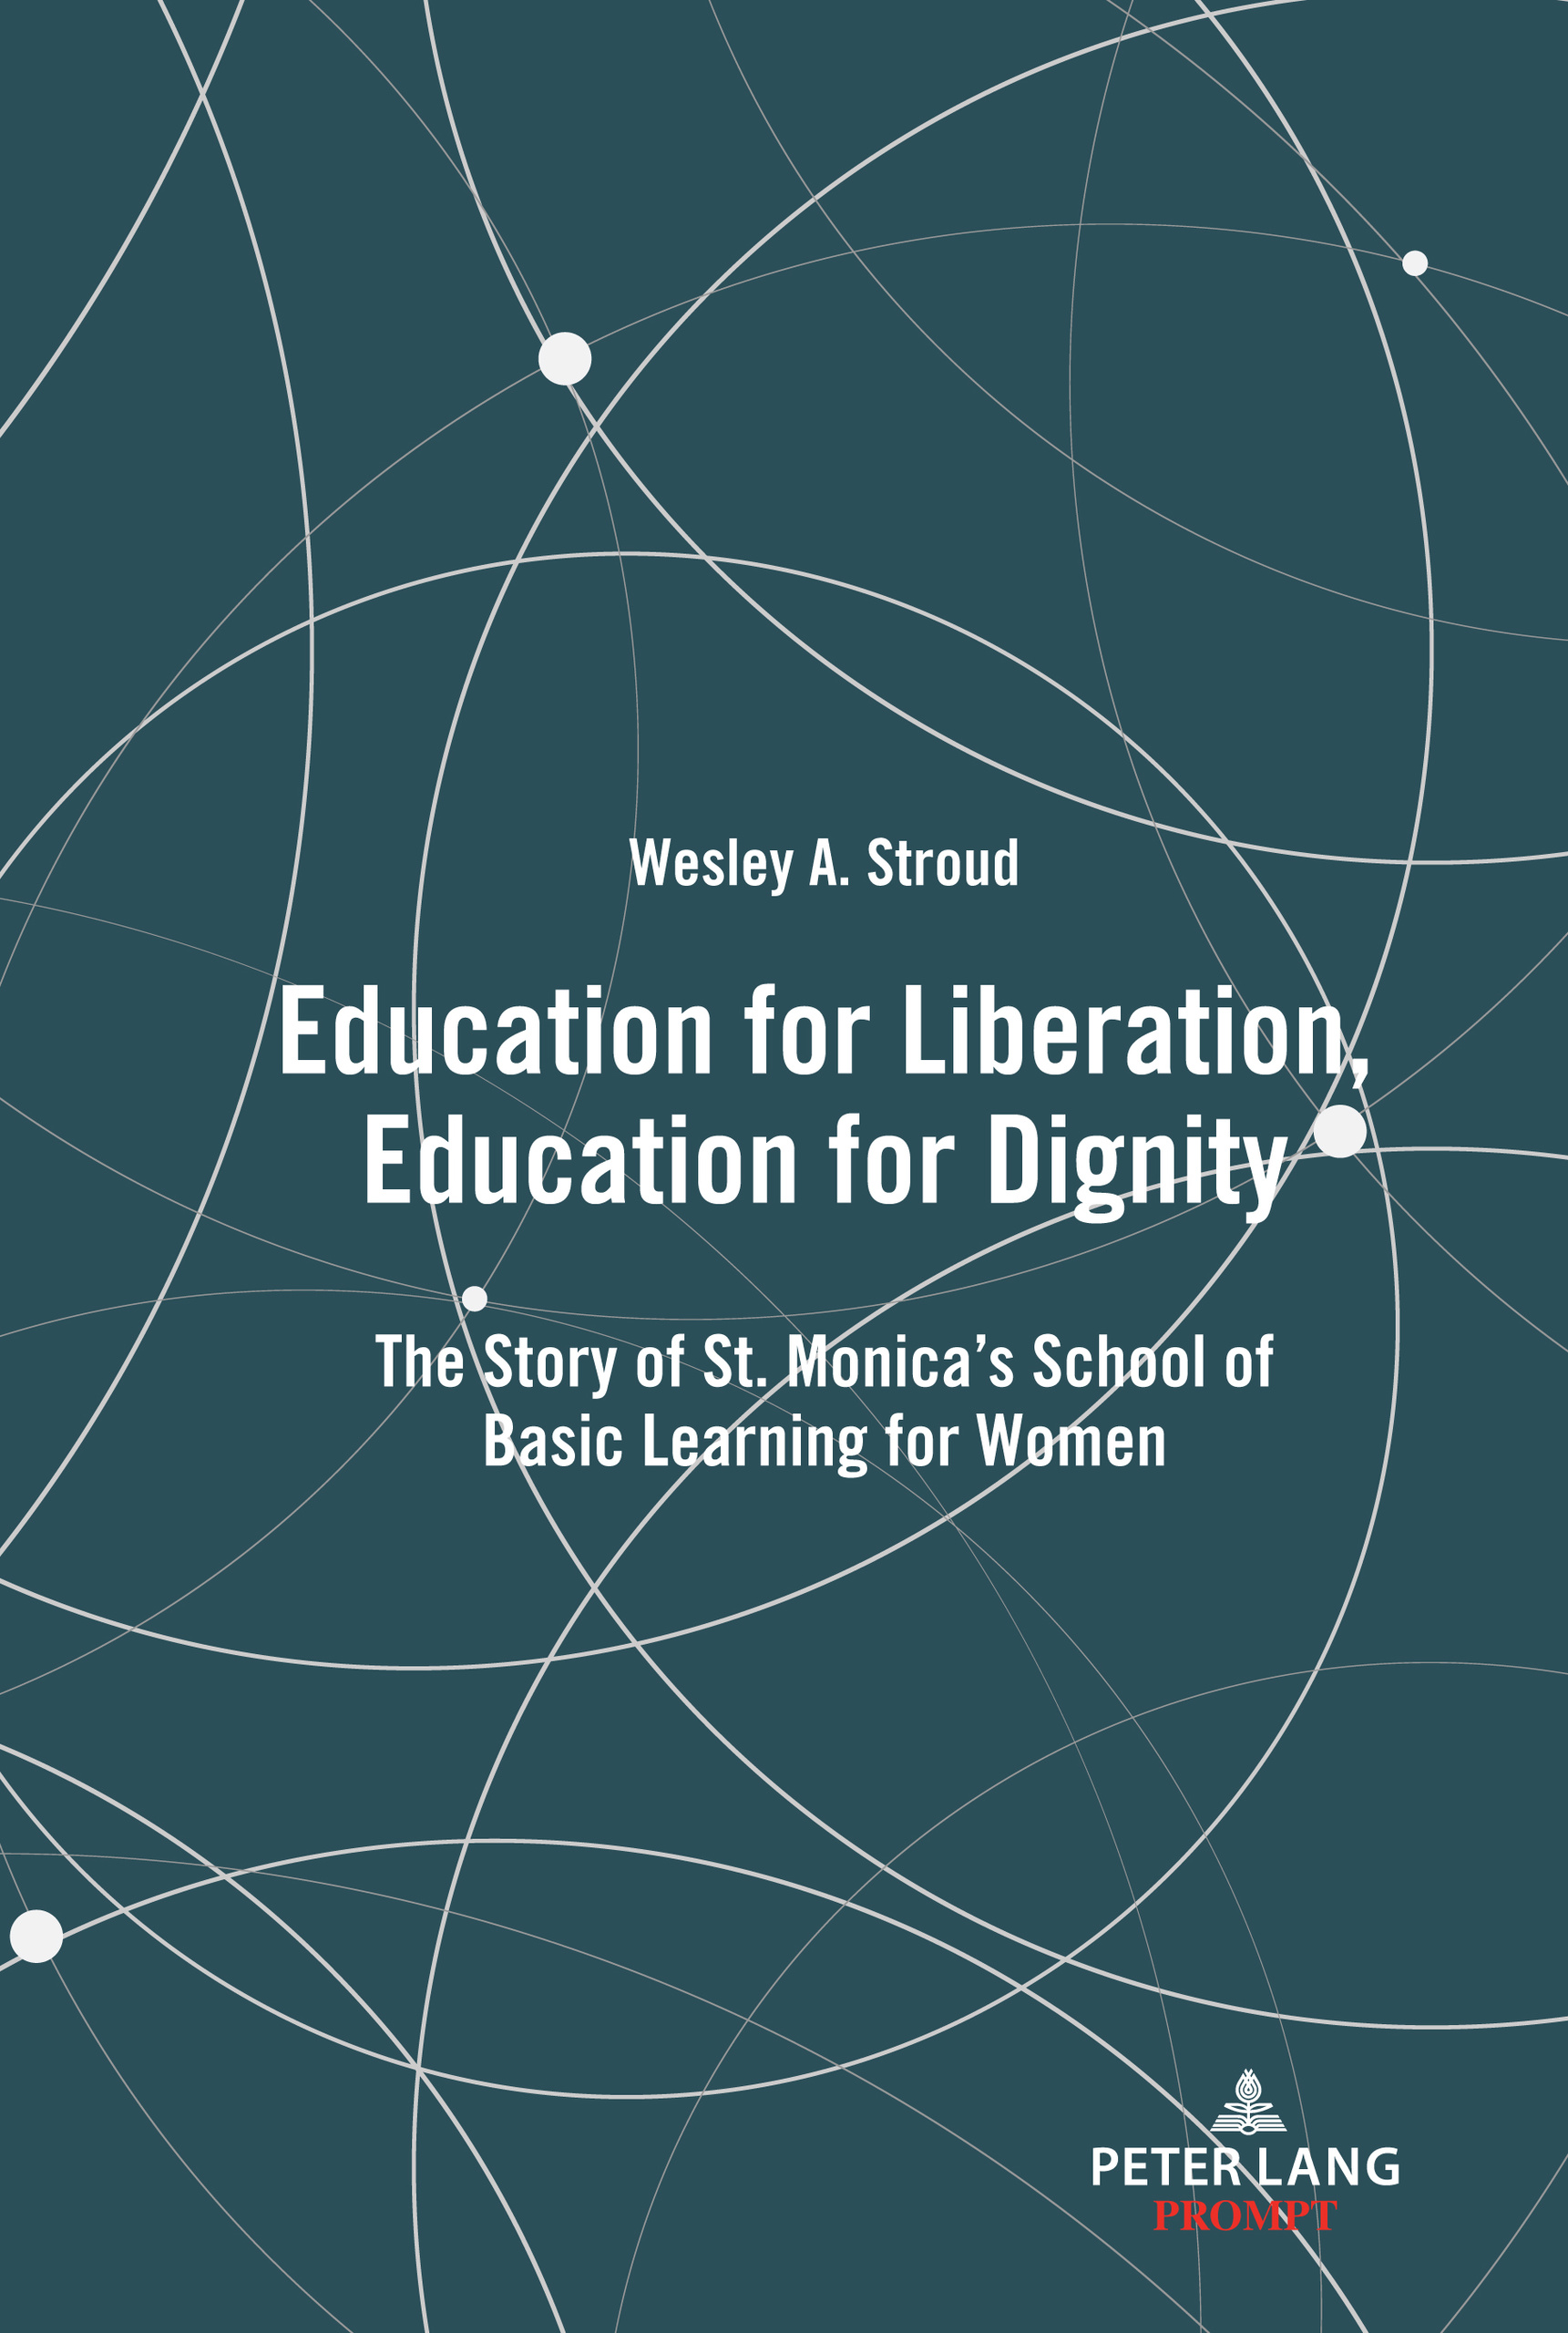 Title: Education for Liberation, Education for Dignity